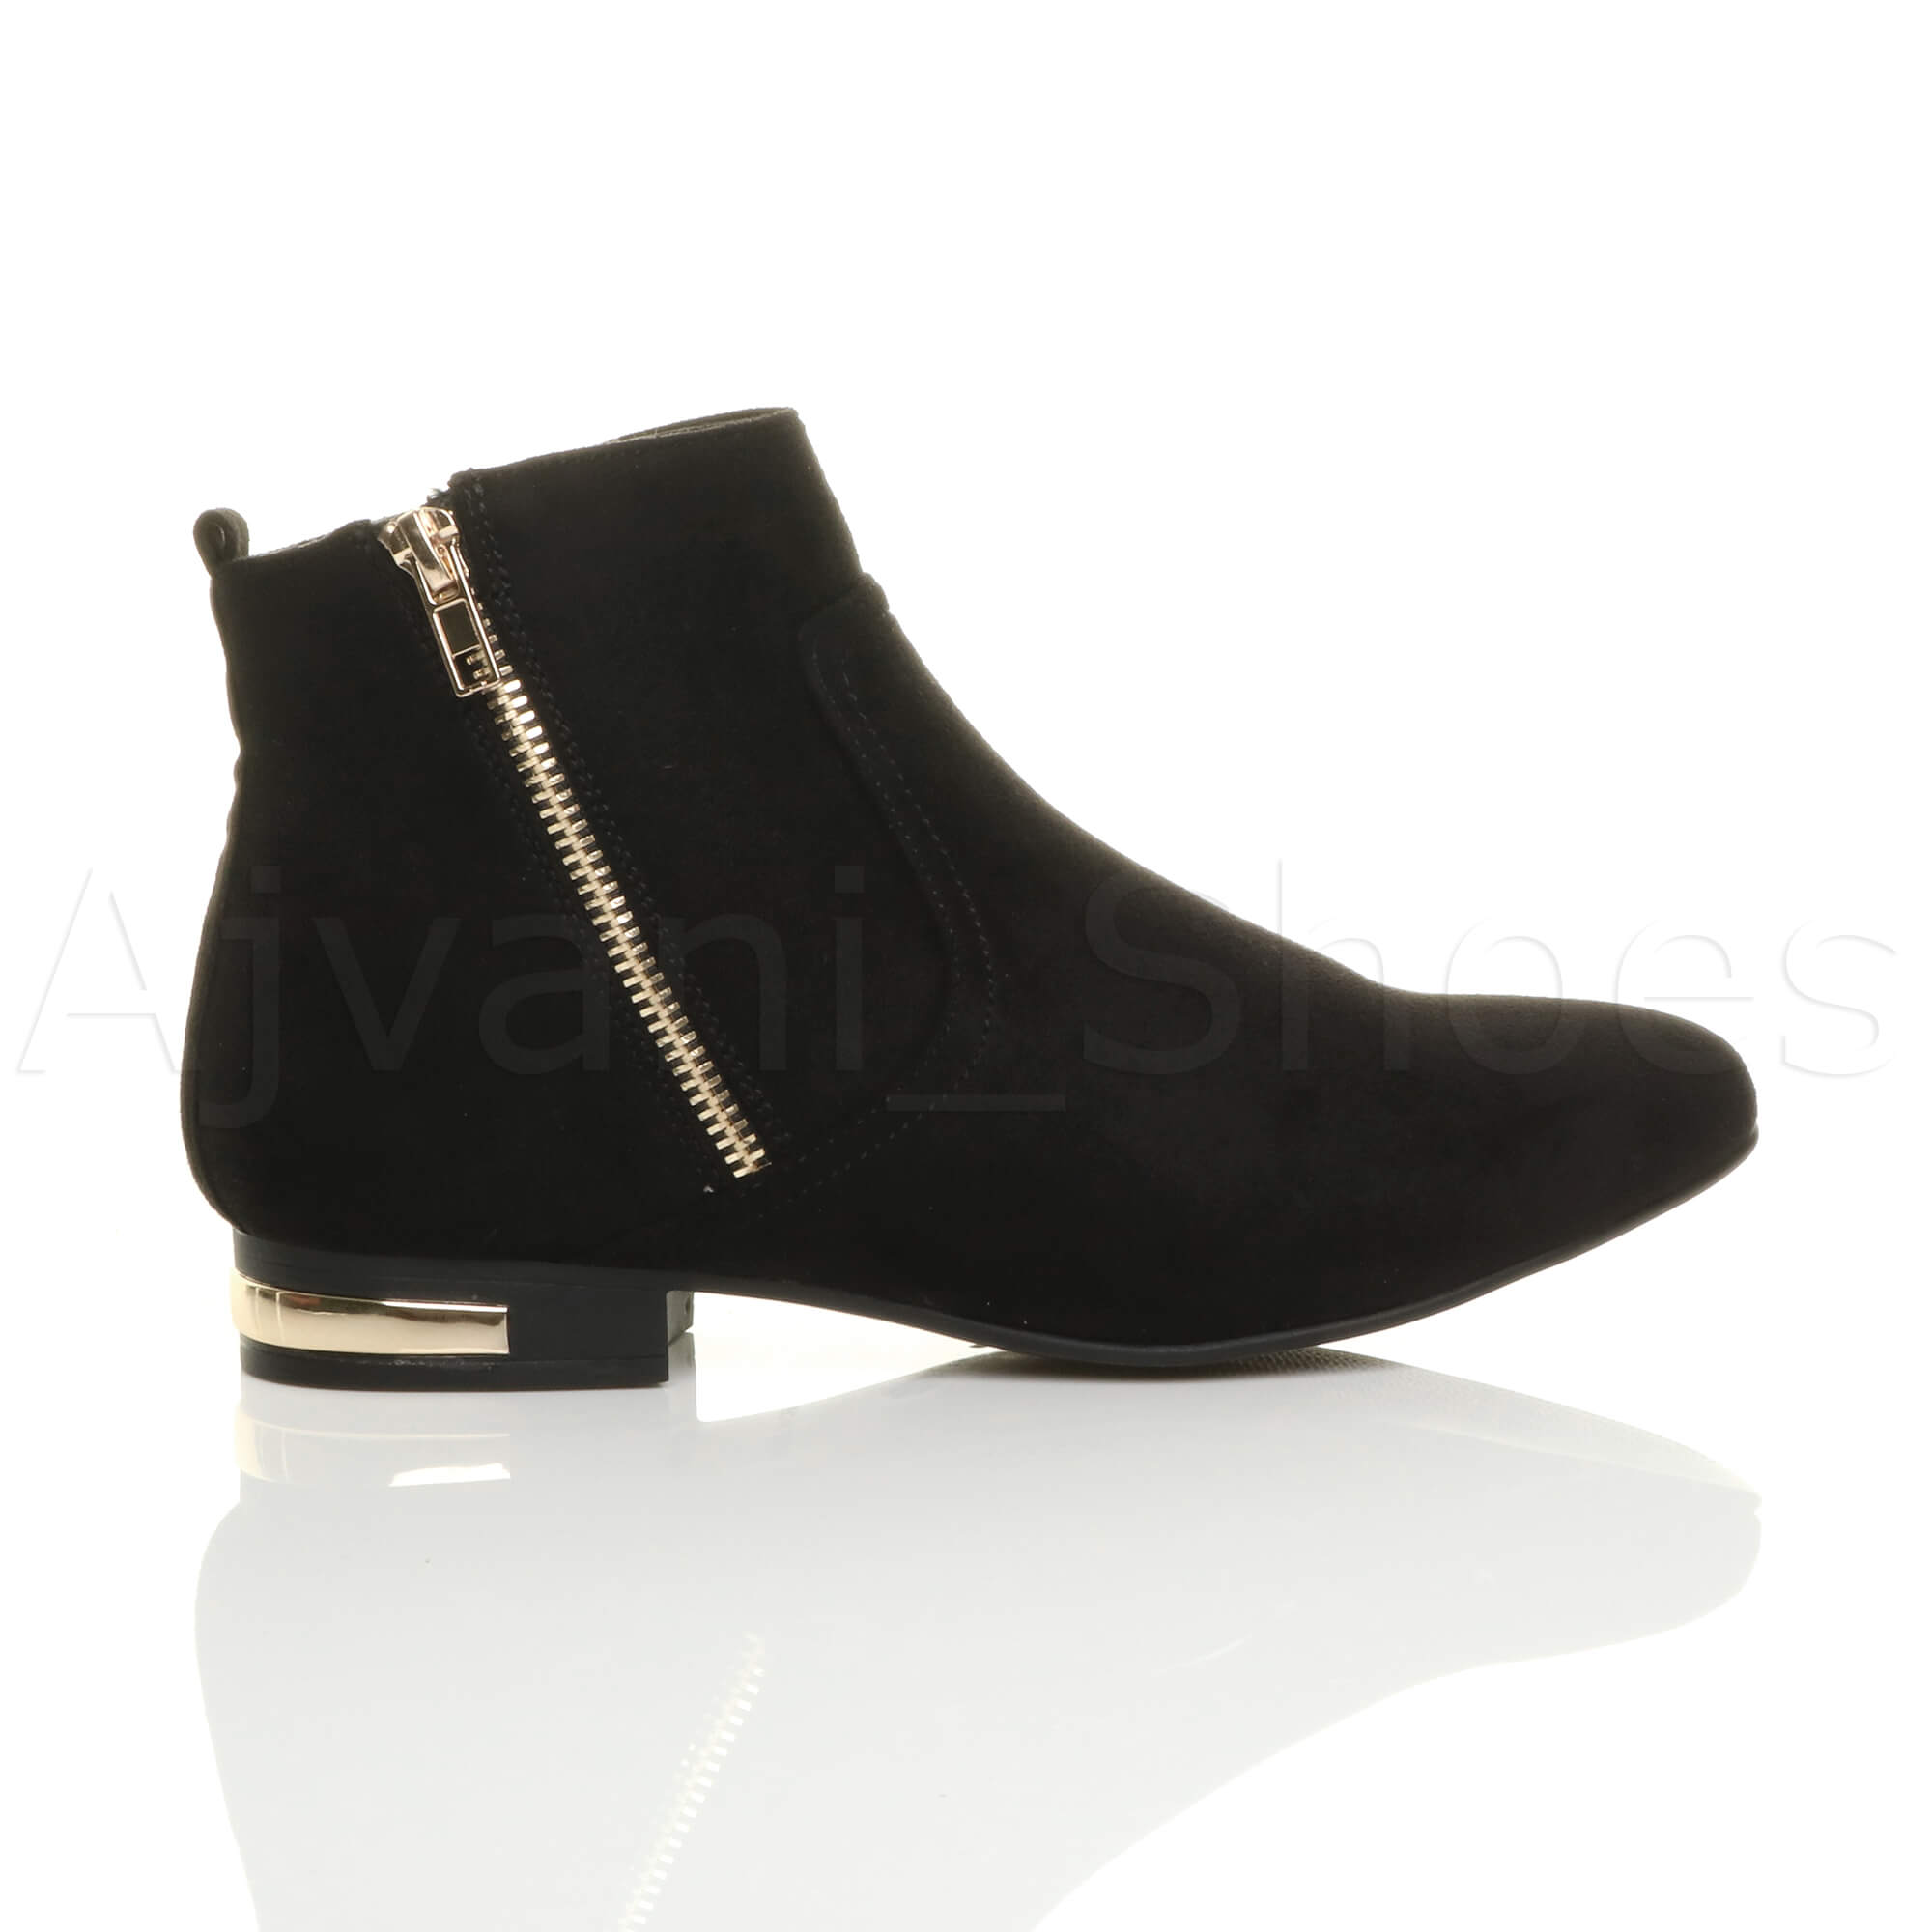 WOMENS-LADIES-LOW-HEEL-GOLD-ZIP-CONTRAST-RIDING-PIXIE-ANKLE-BOOTS-BOOTIES-SIZE thumbnail 11